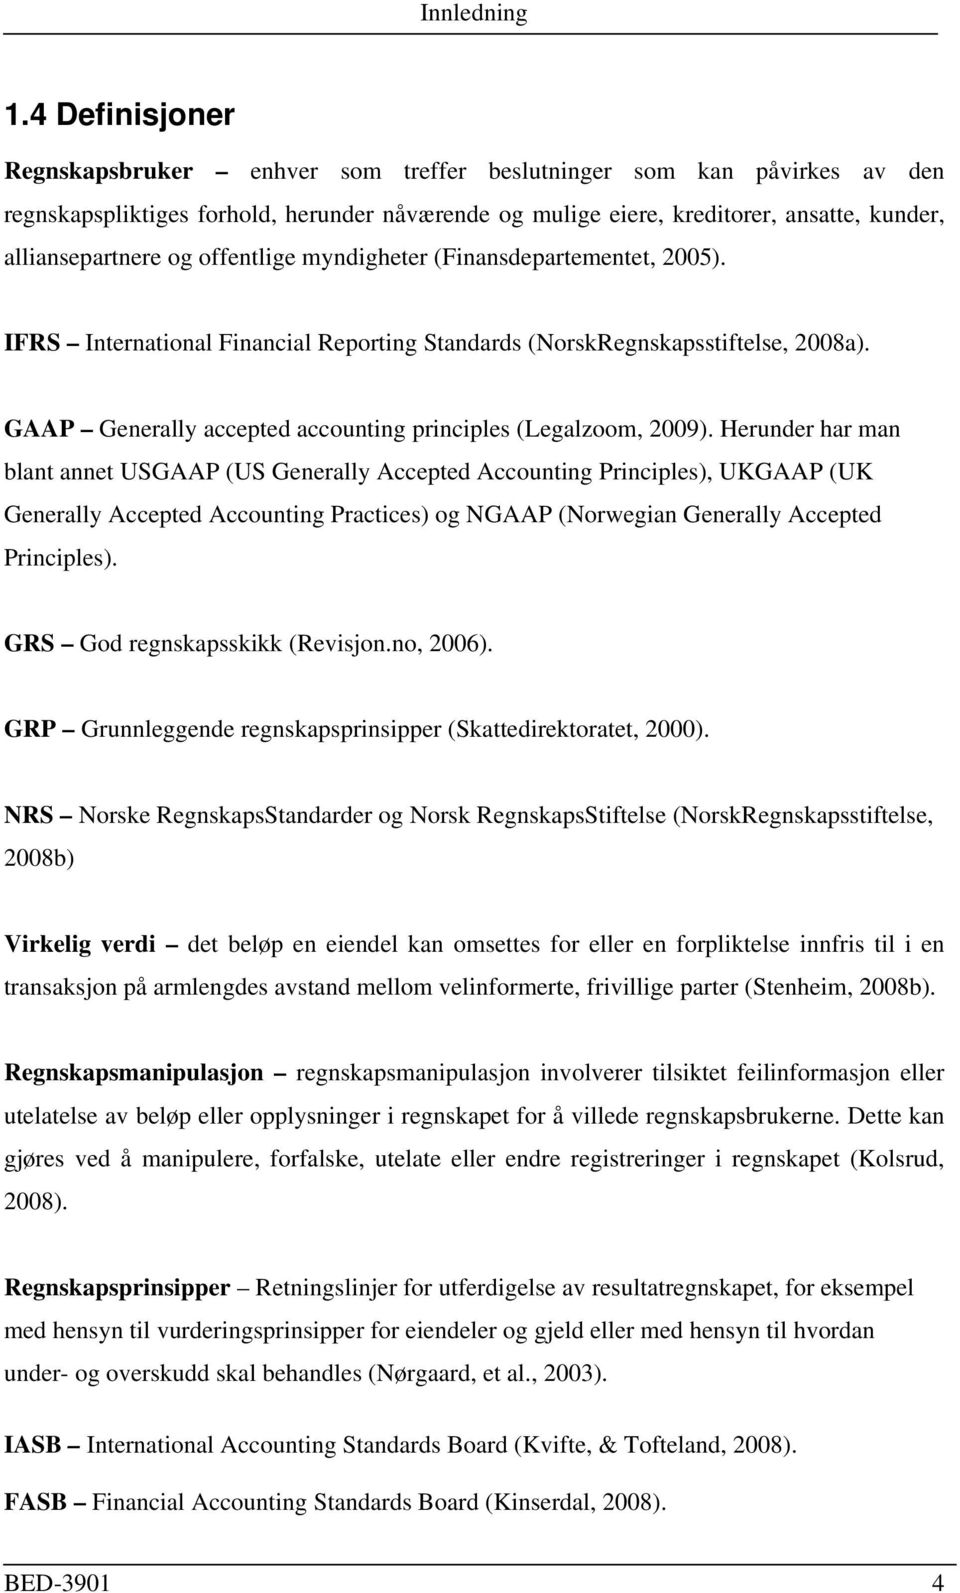 offentlige myndigheter (Finansdepartementet, 2005). IFRS International Financial Reporting Standards (NorskRegnskapsstiftelse, 2008a). GAAP Generally accepted accounting principles (Legalzoom, 2009).